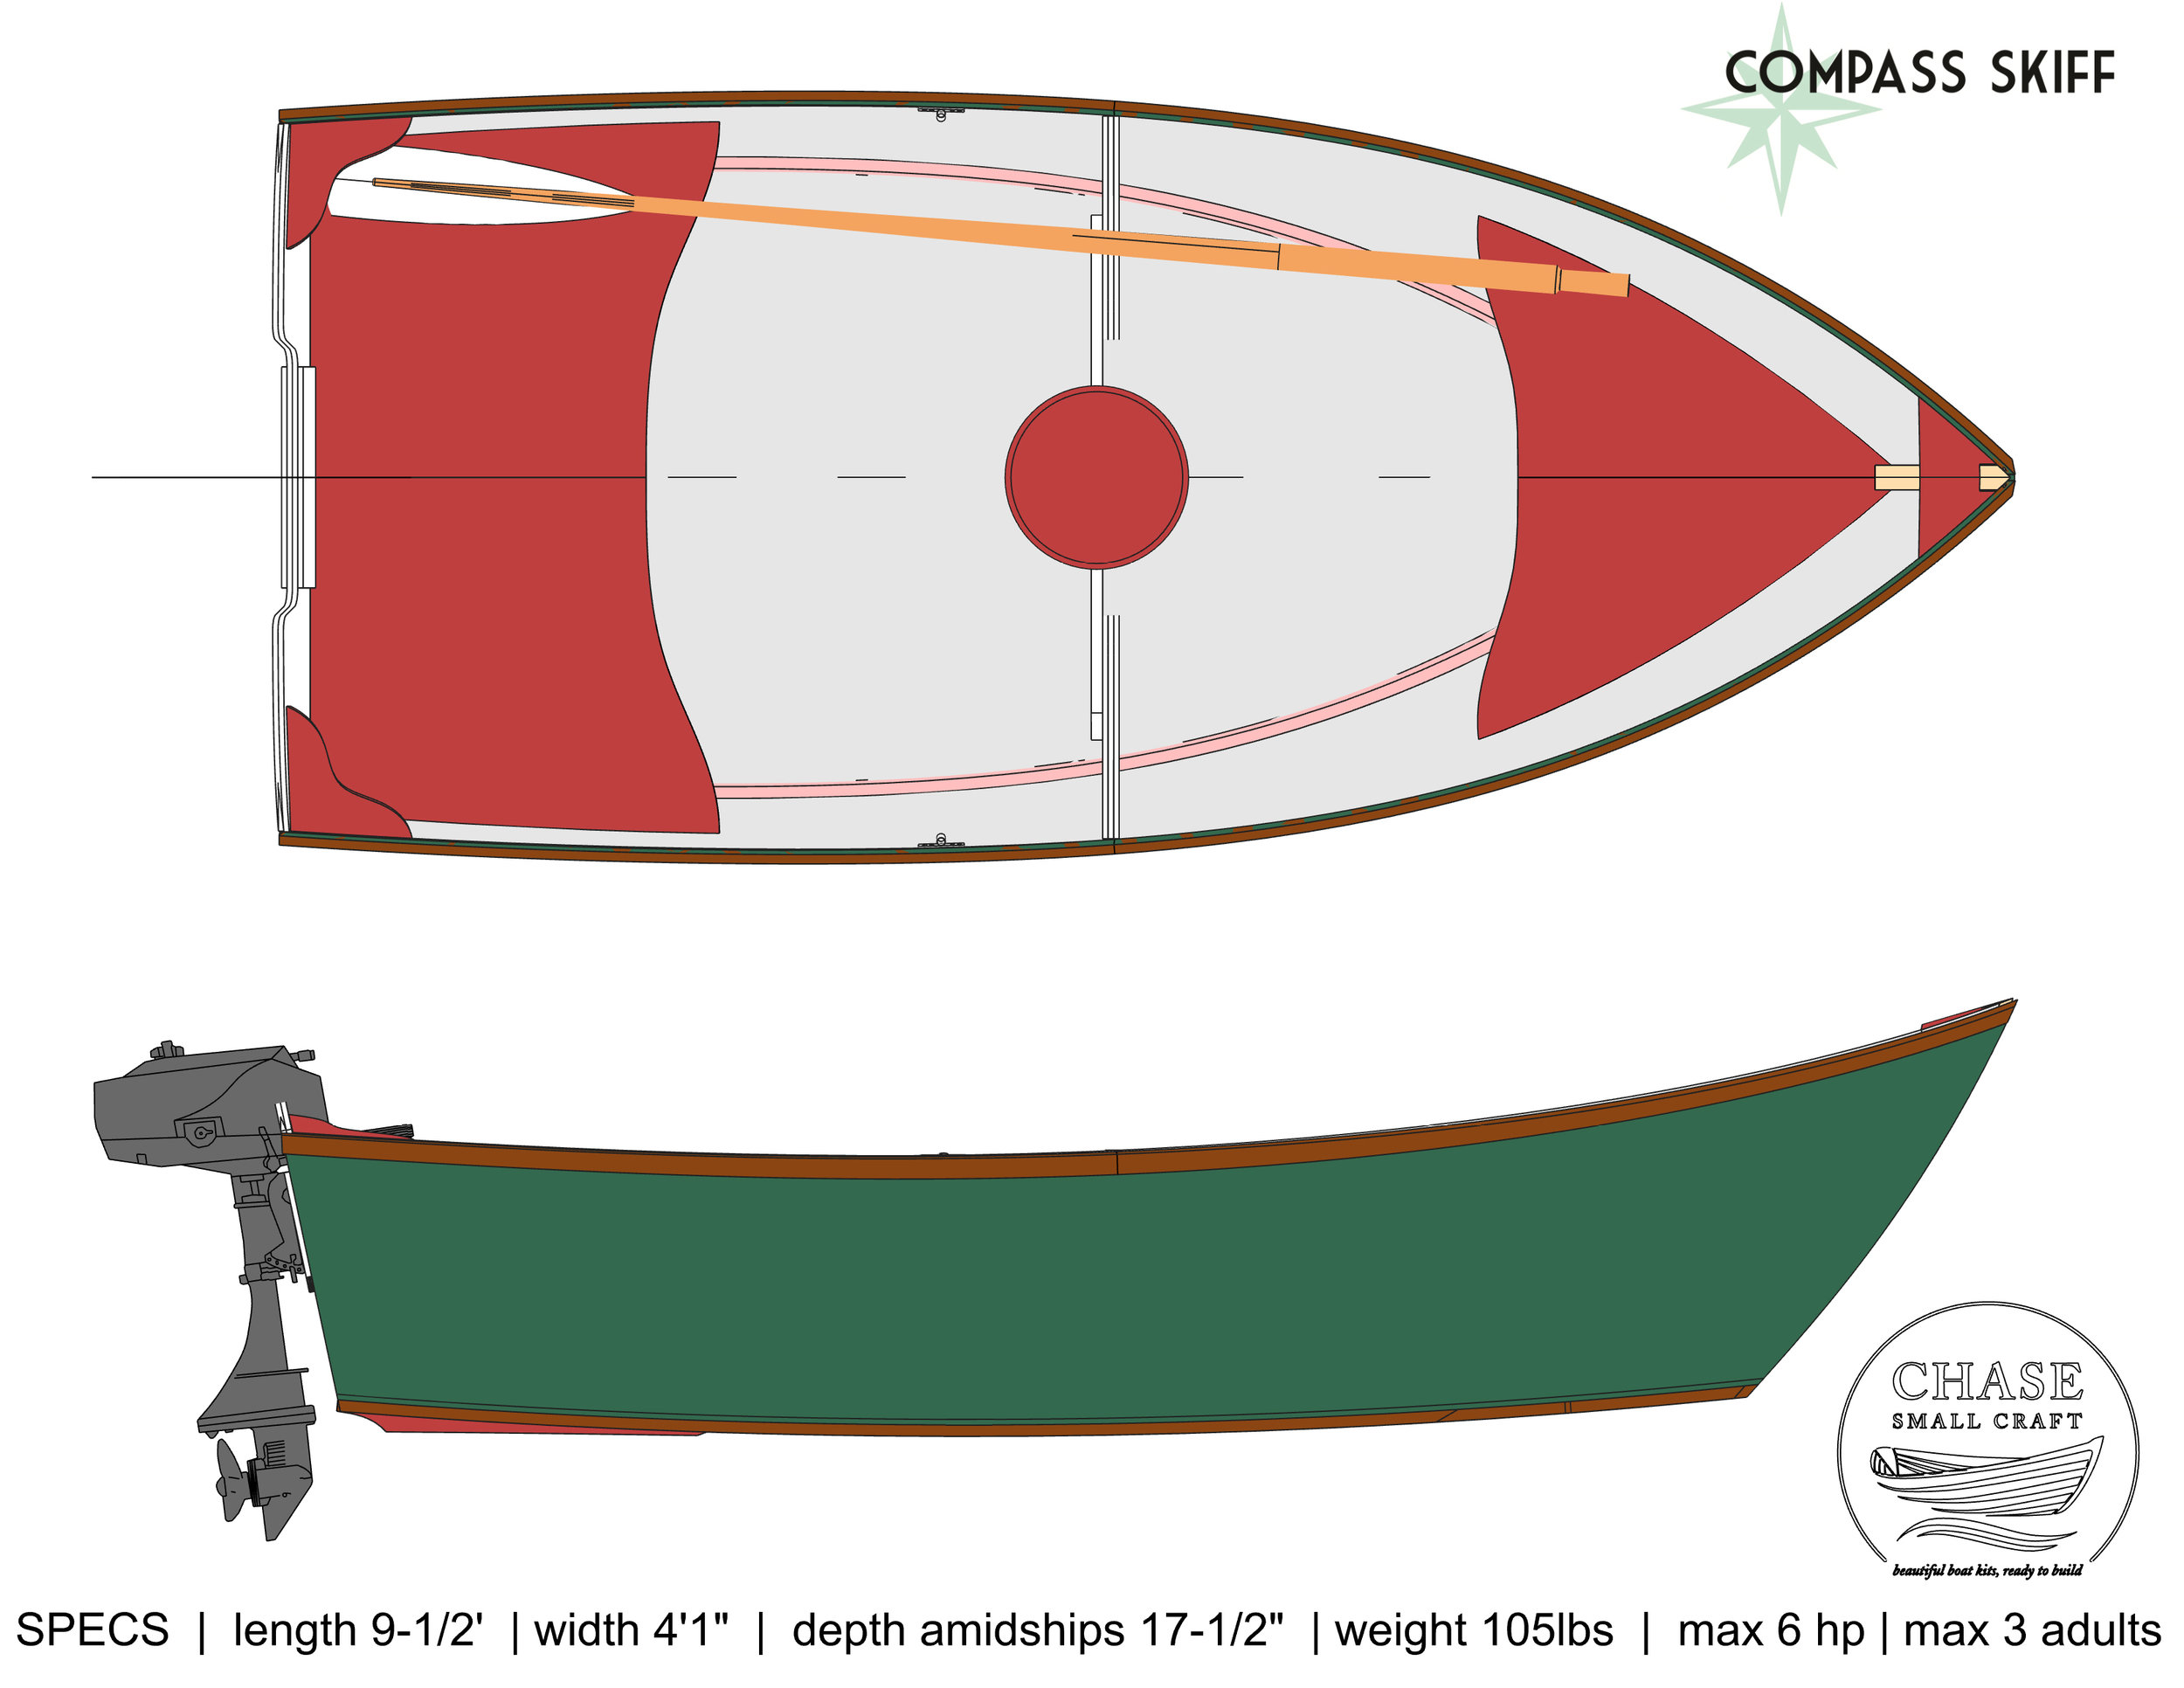 The 10' Compass Skiff general arrangement. There is room in back for a 3-gal tank.